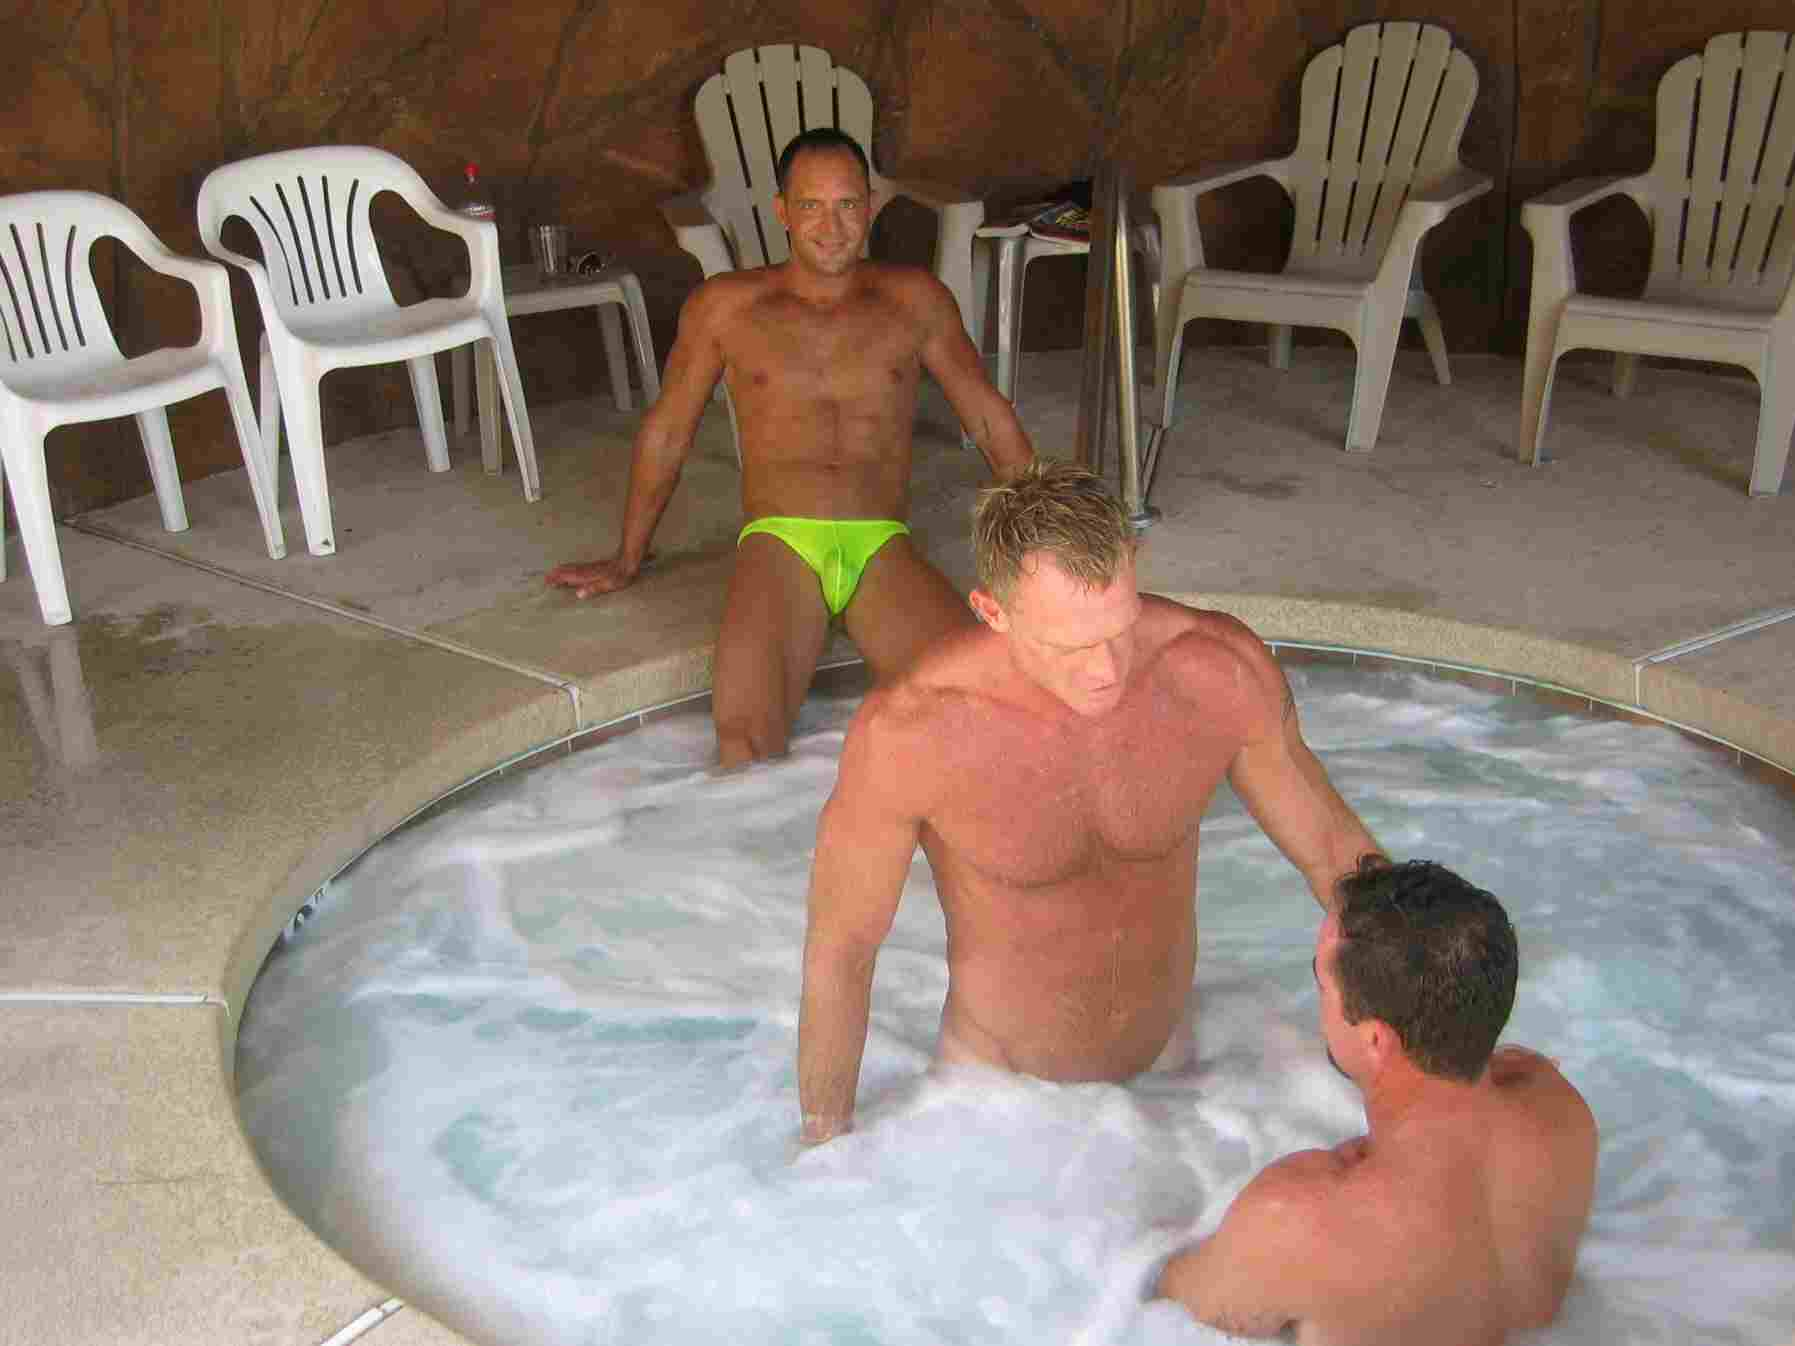 Gay Resort Clothing Optional - Other - Hot Videos-3722